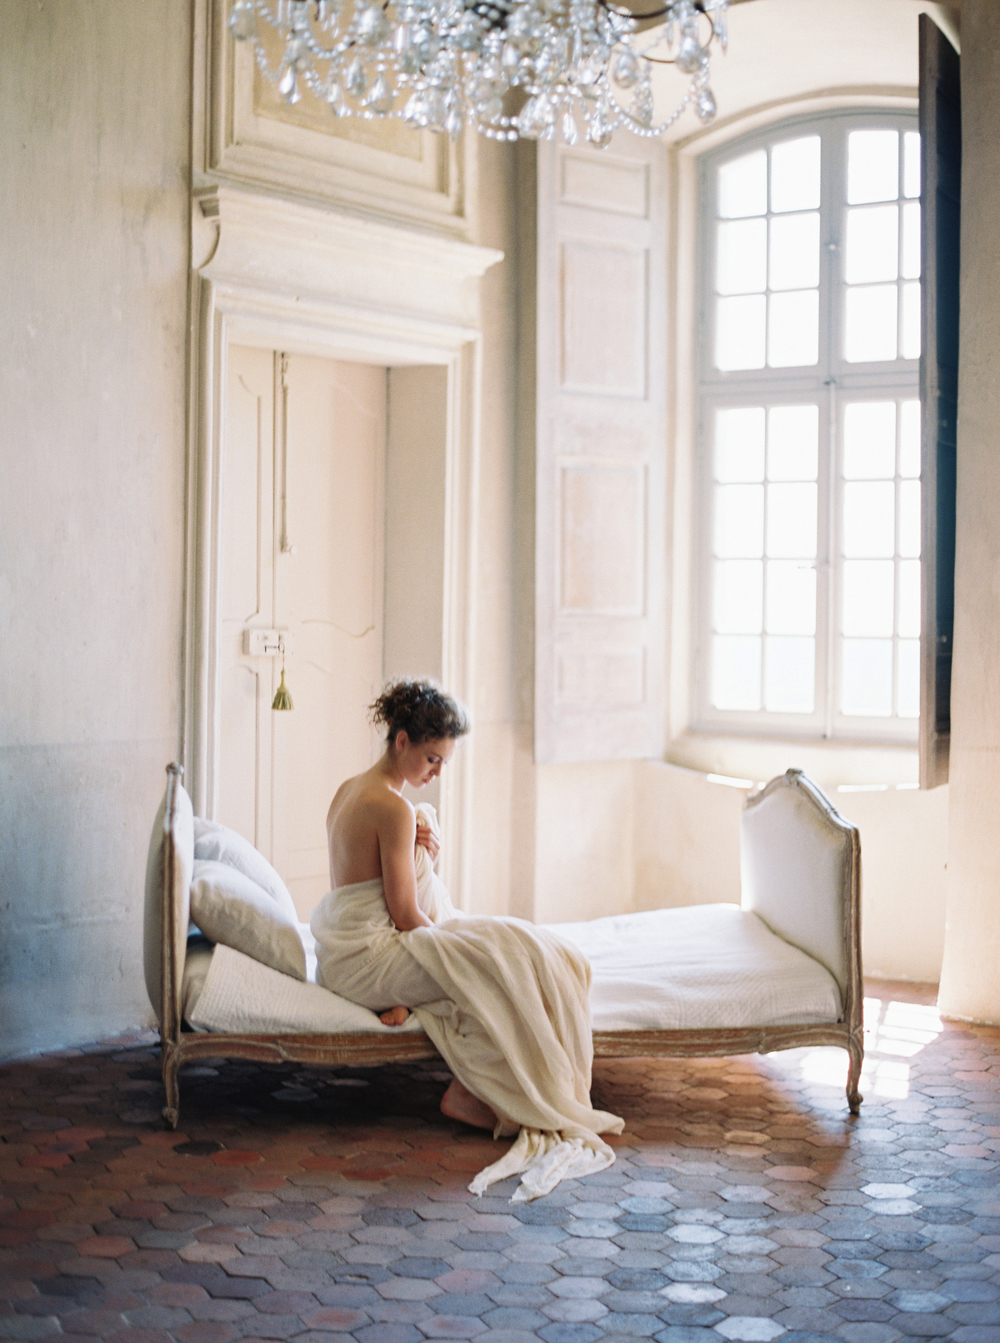 laura_gordon_contax645_fuji400_france_pearl_and_godiva_wedding_sparrow_chateau_moissac_bellvue_photovisionprints.jpg